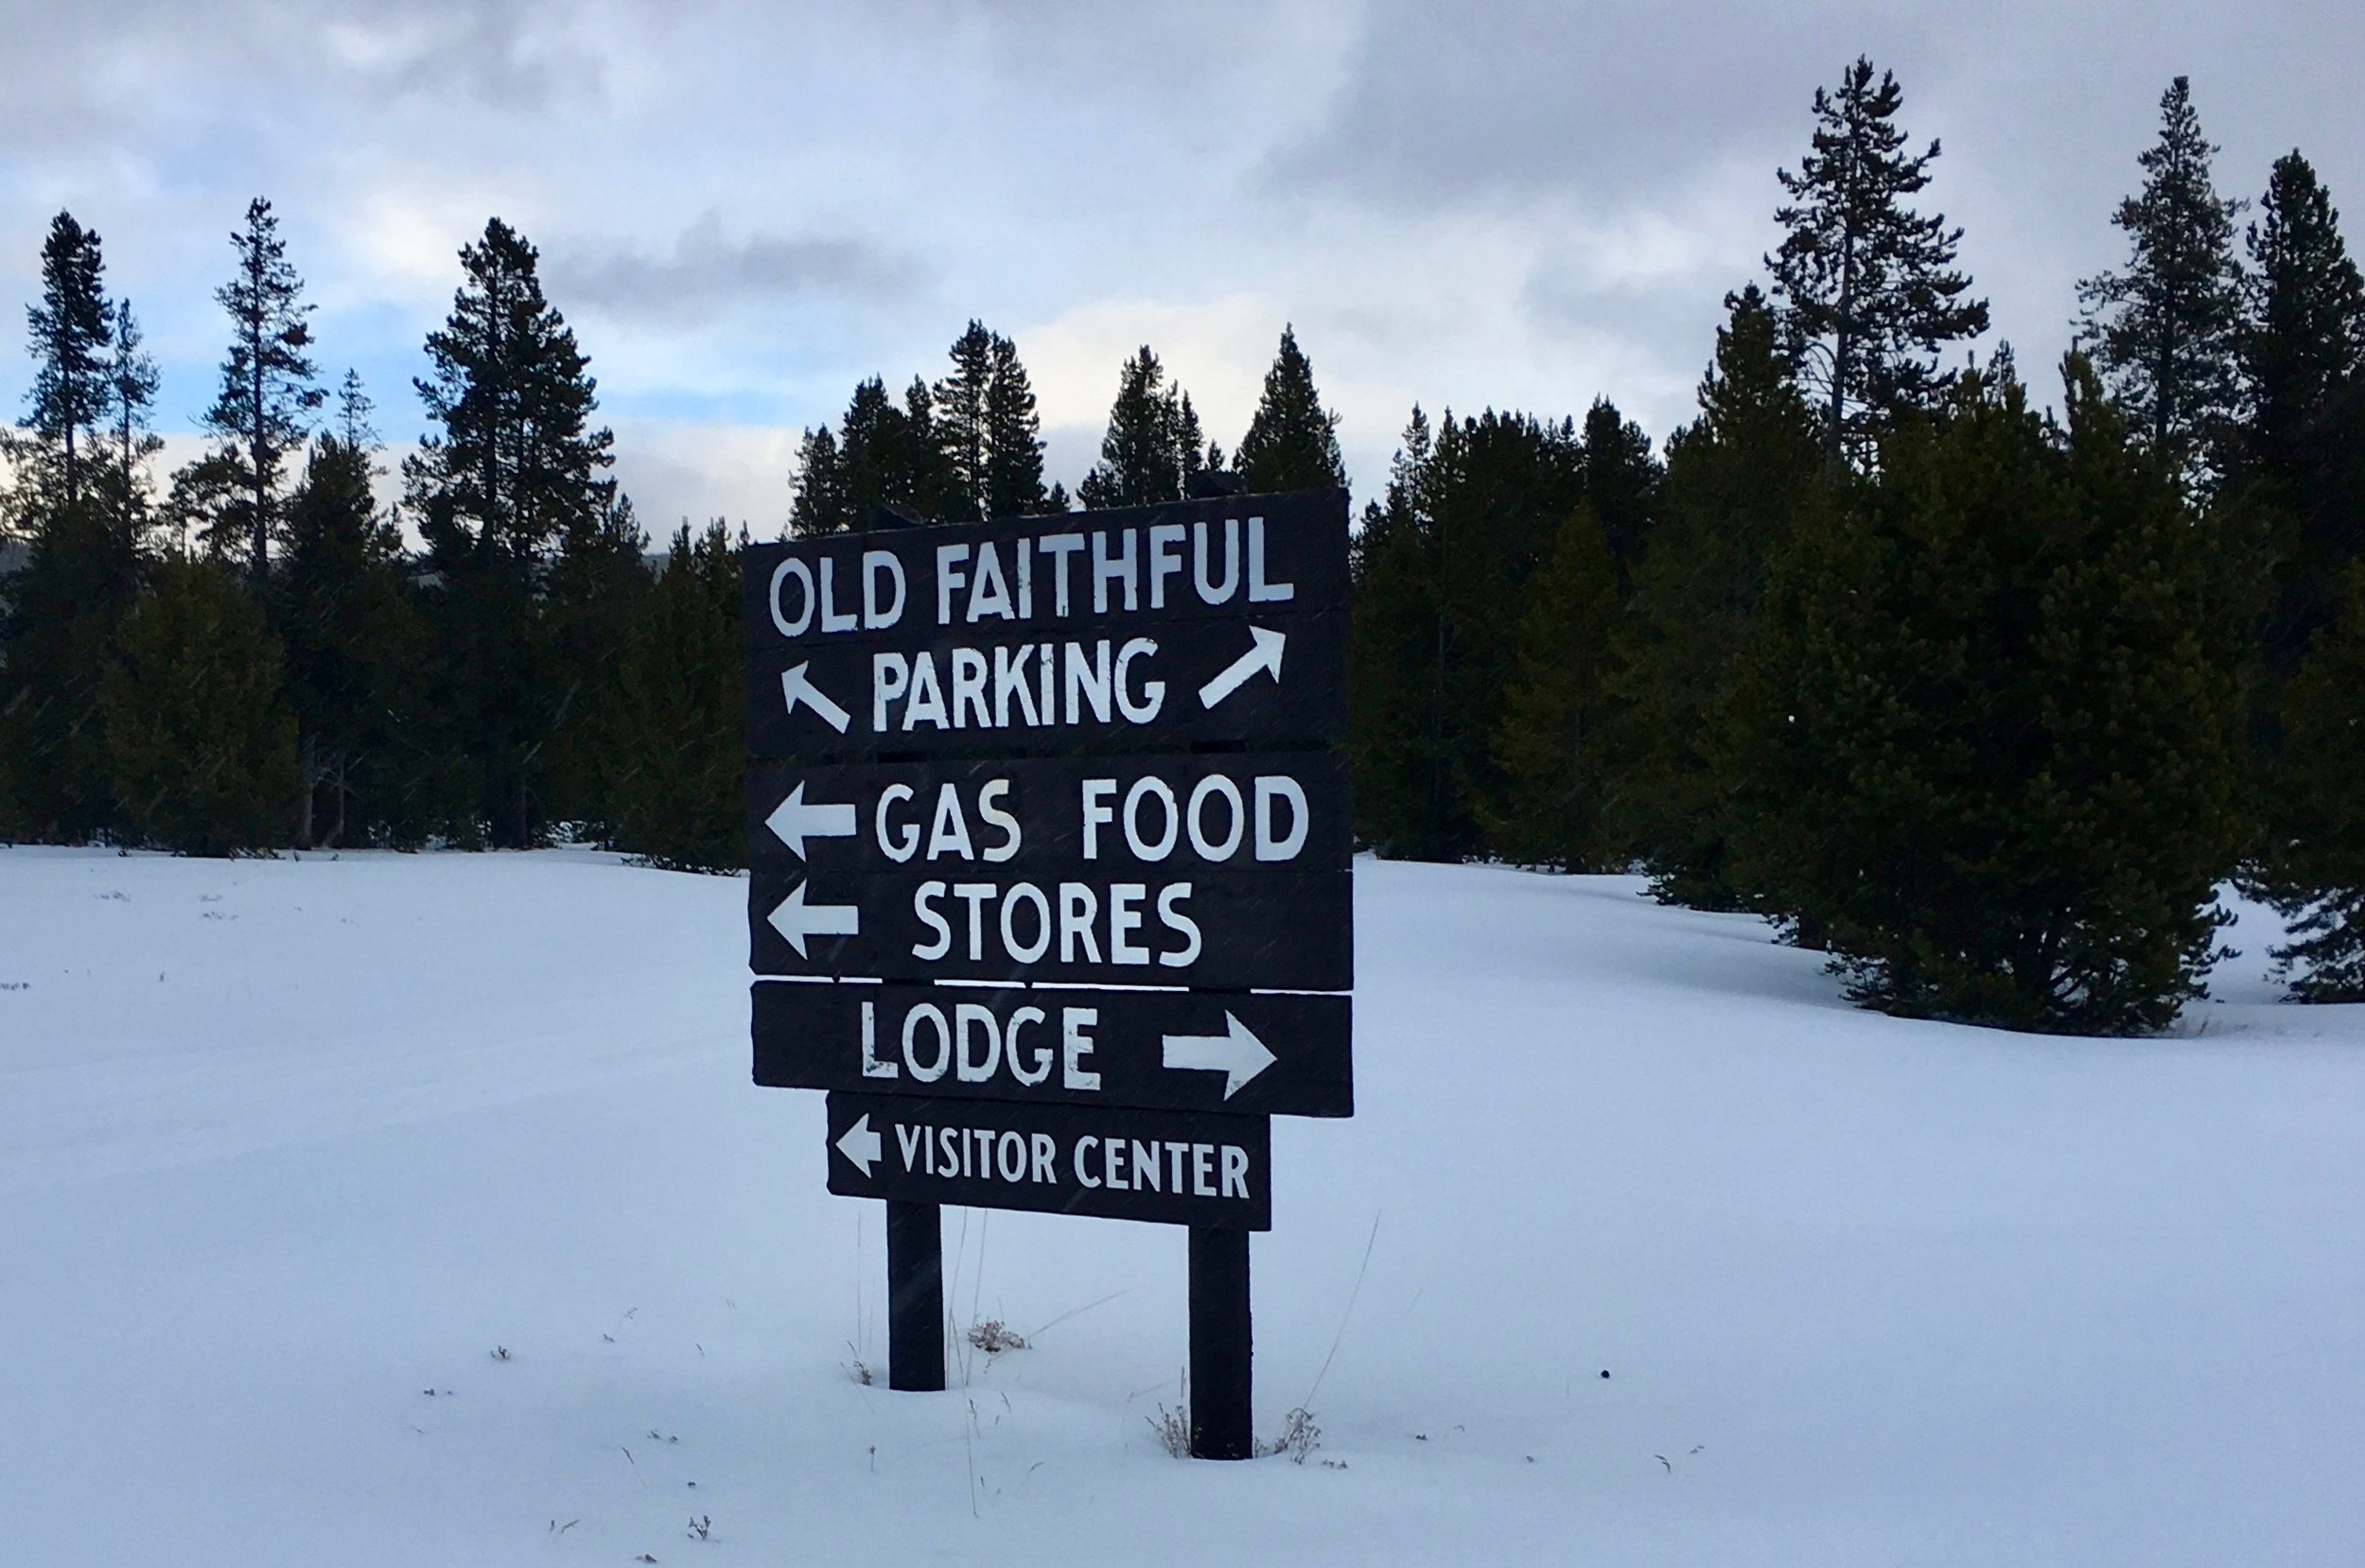 Old Faithful is different in the winter